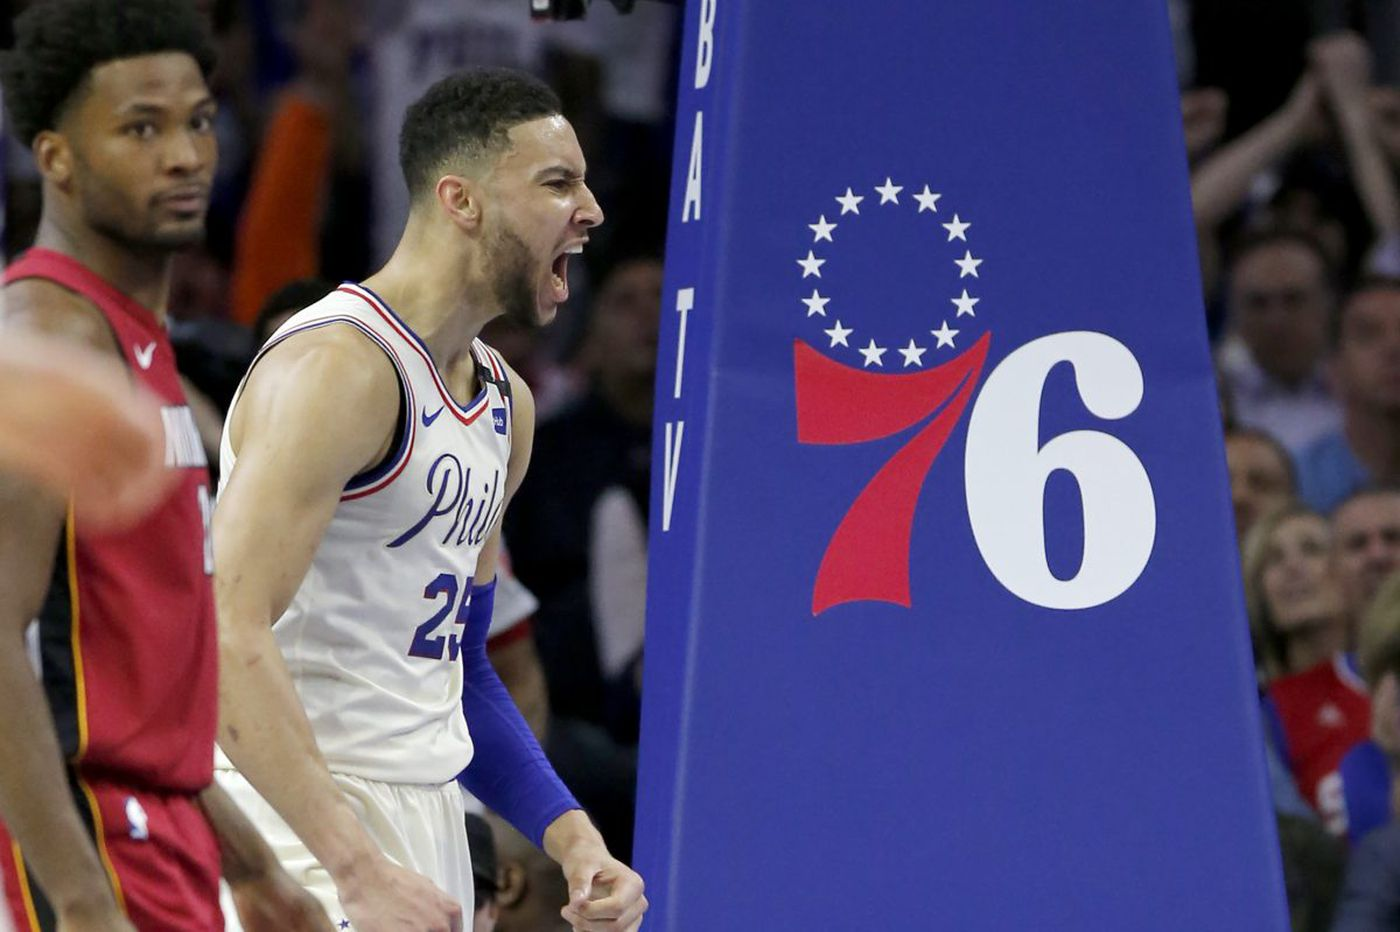 Sixers' Ben Simmons keeps competitive fire under control | Keith Pompey